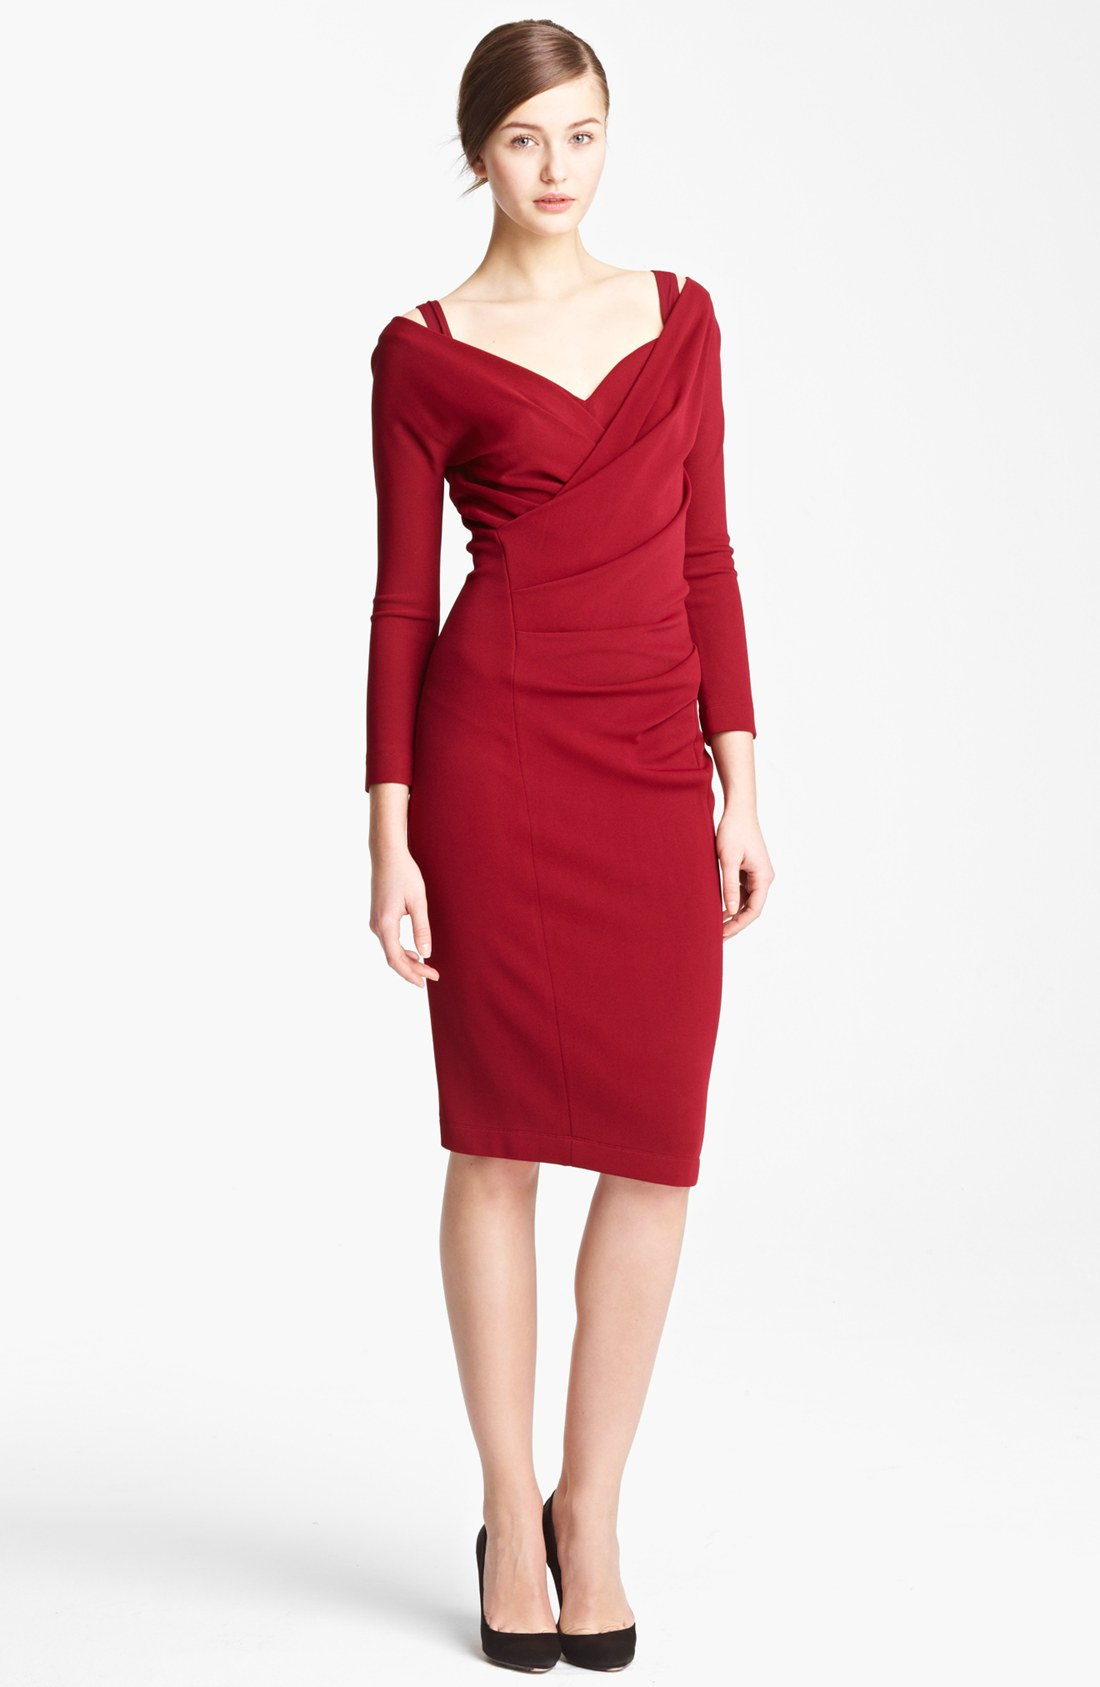 Donna karan new york collection draped crepe jersey dress for Donna karen new york